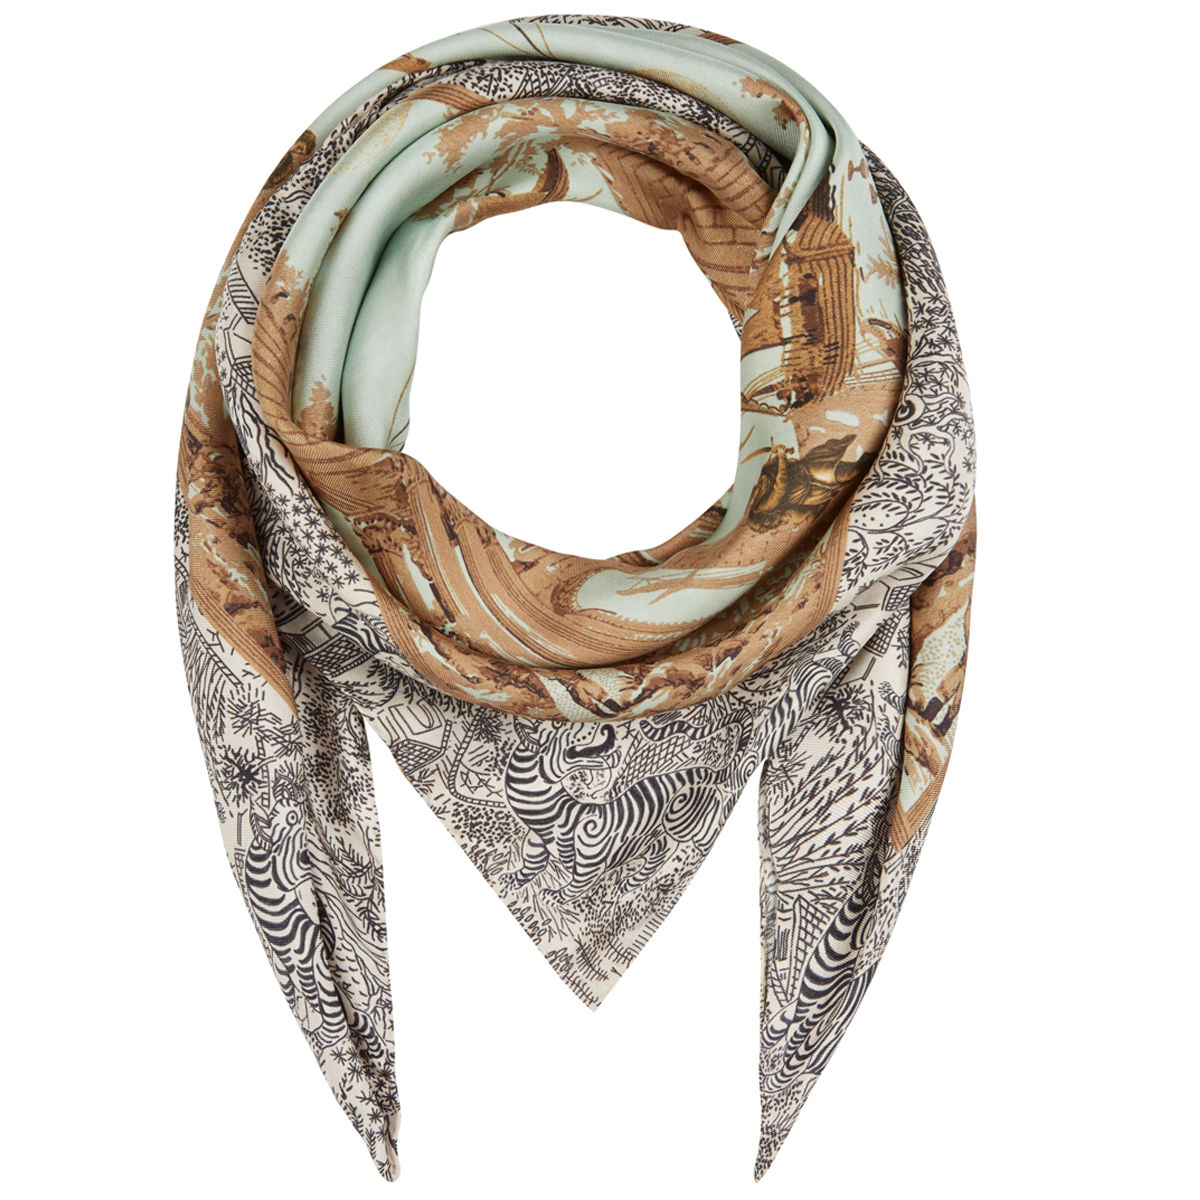 Medium scarf in Cursed Civilisation print - product images  of